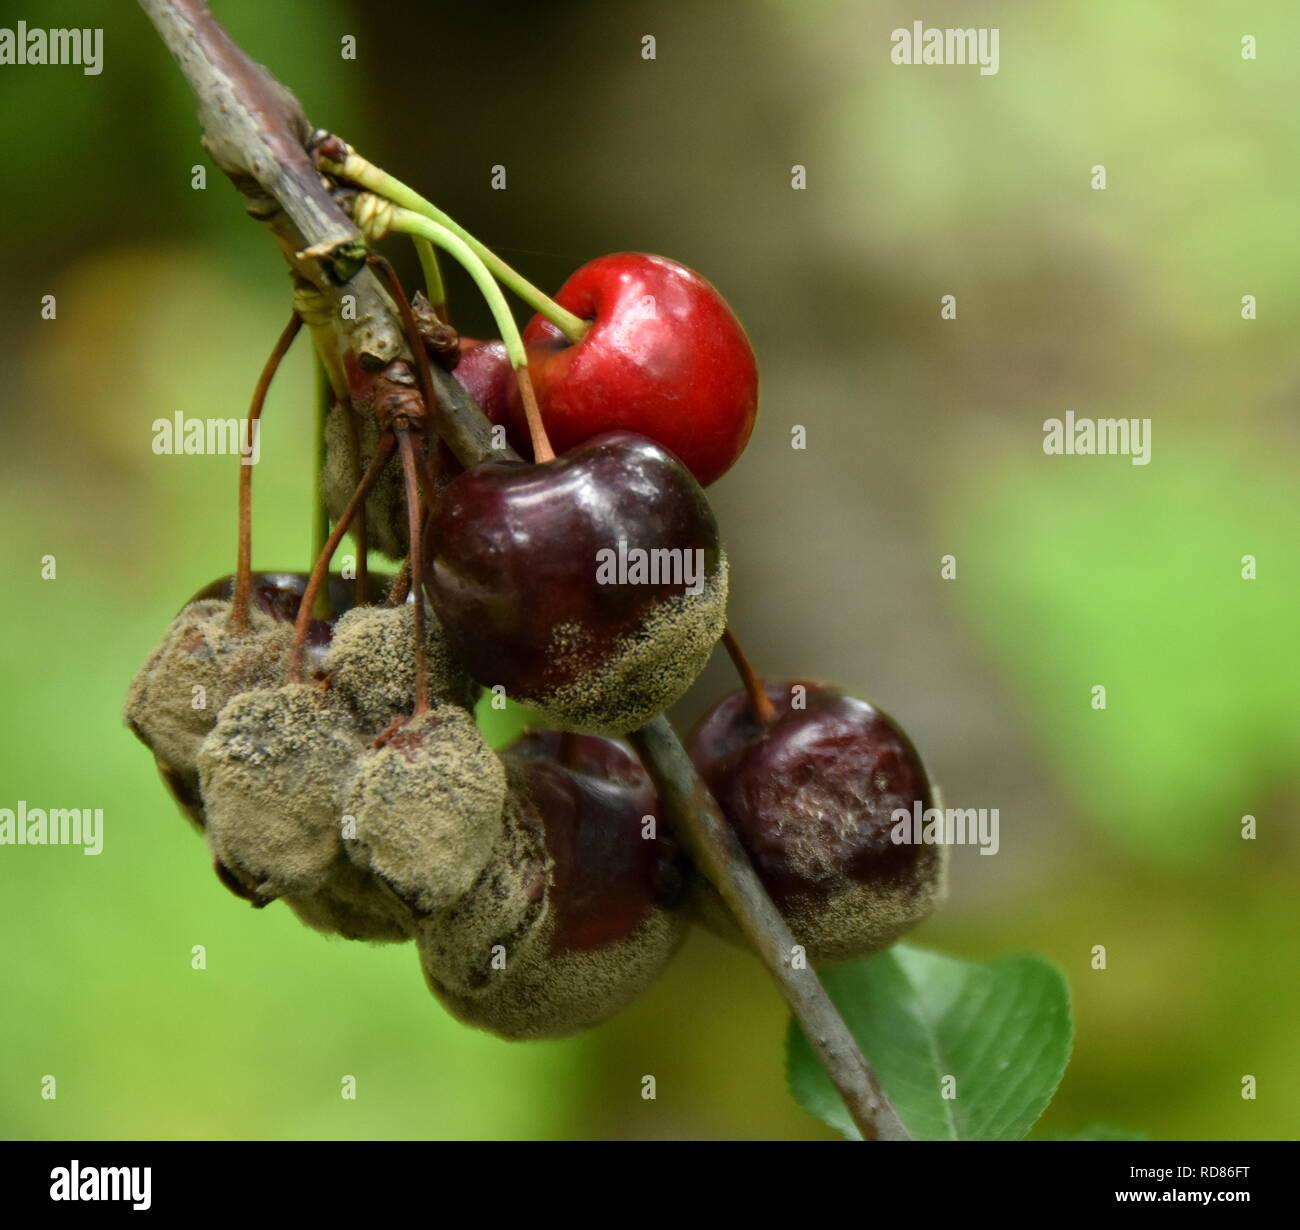 Cherries damaged by too much rain and warmth, causing brown rot (Manilinia fructicola) - Stock Image